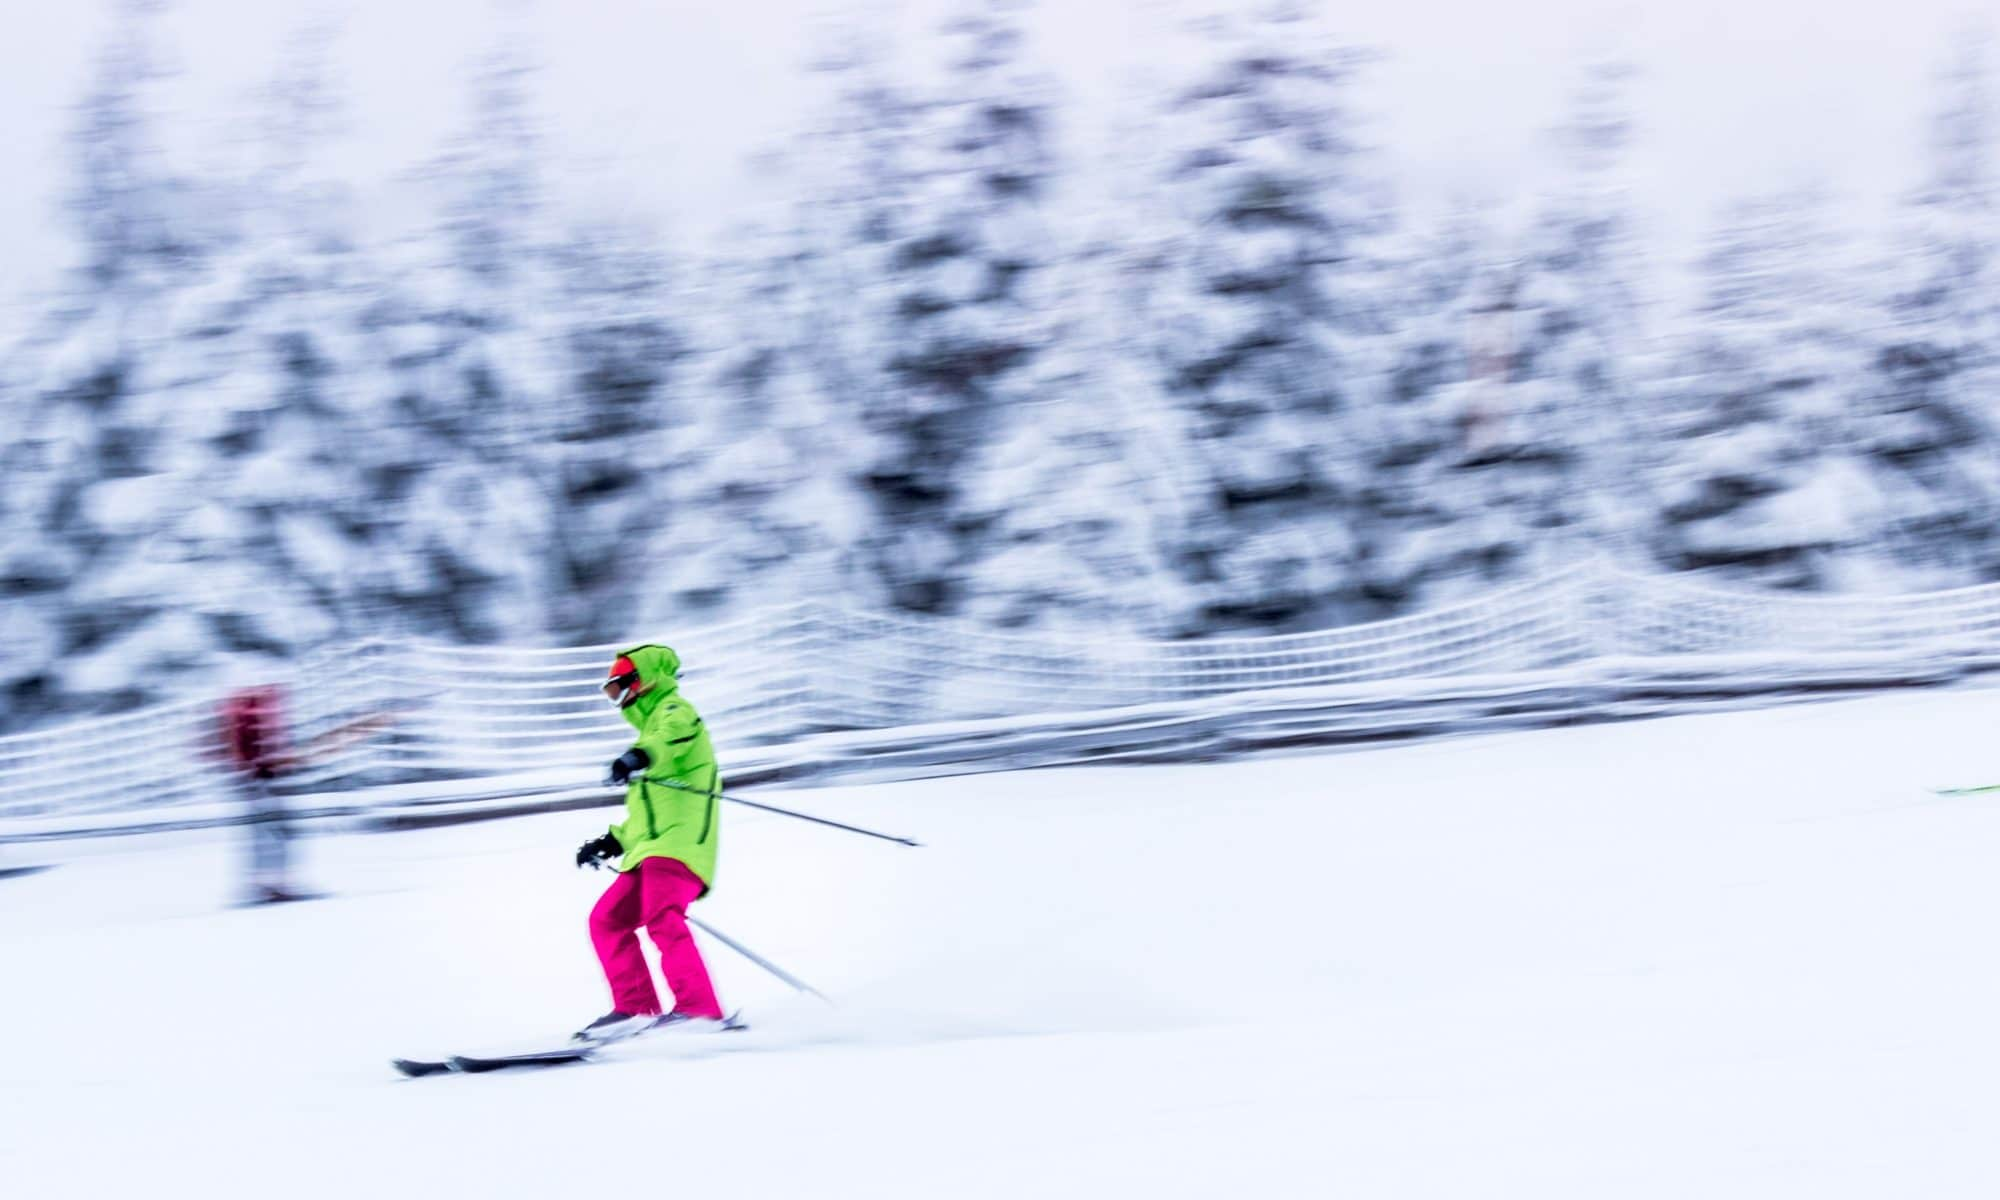 In Andorra, ski schools are part of the mandated curriculum for young children.